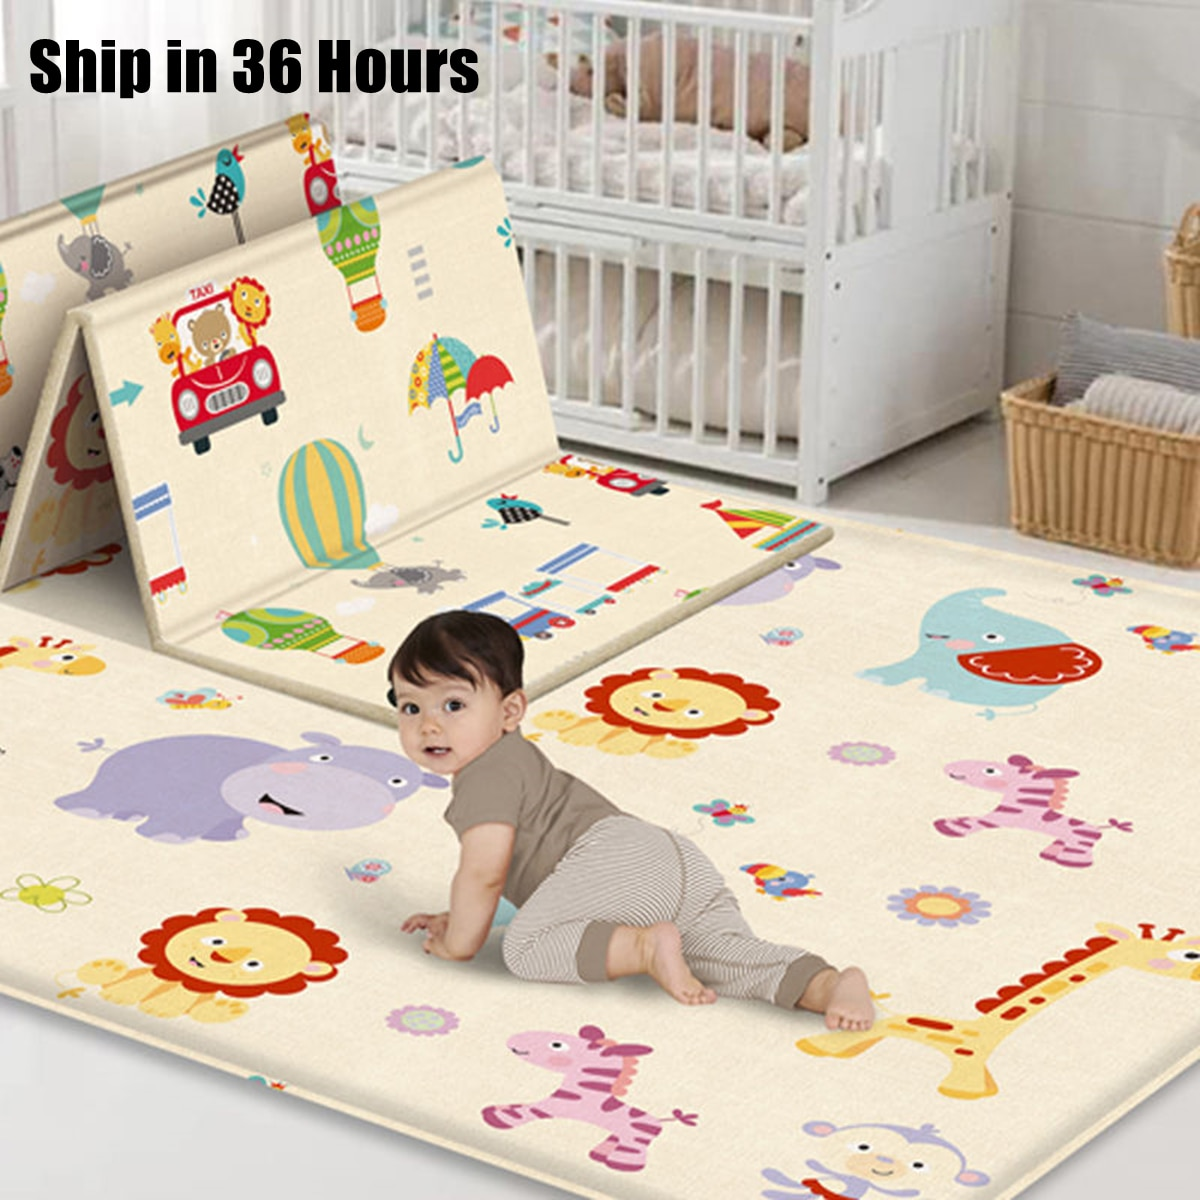 baby developing mat for newborn non toxic soft xpe foam baby climbing pad foldable activity gym for children playground kids rug Foldable Cartoon Baby Play Mat Xpe Puzzle Children's Mat Baby Climbing Pad Kids Rug Baby Games Mats Toys for Children 180*100cm